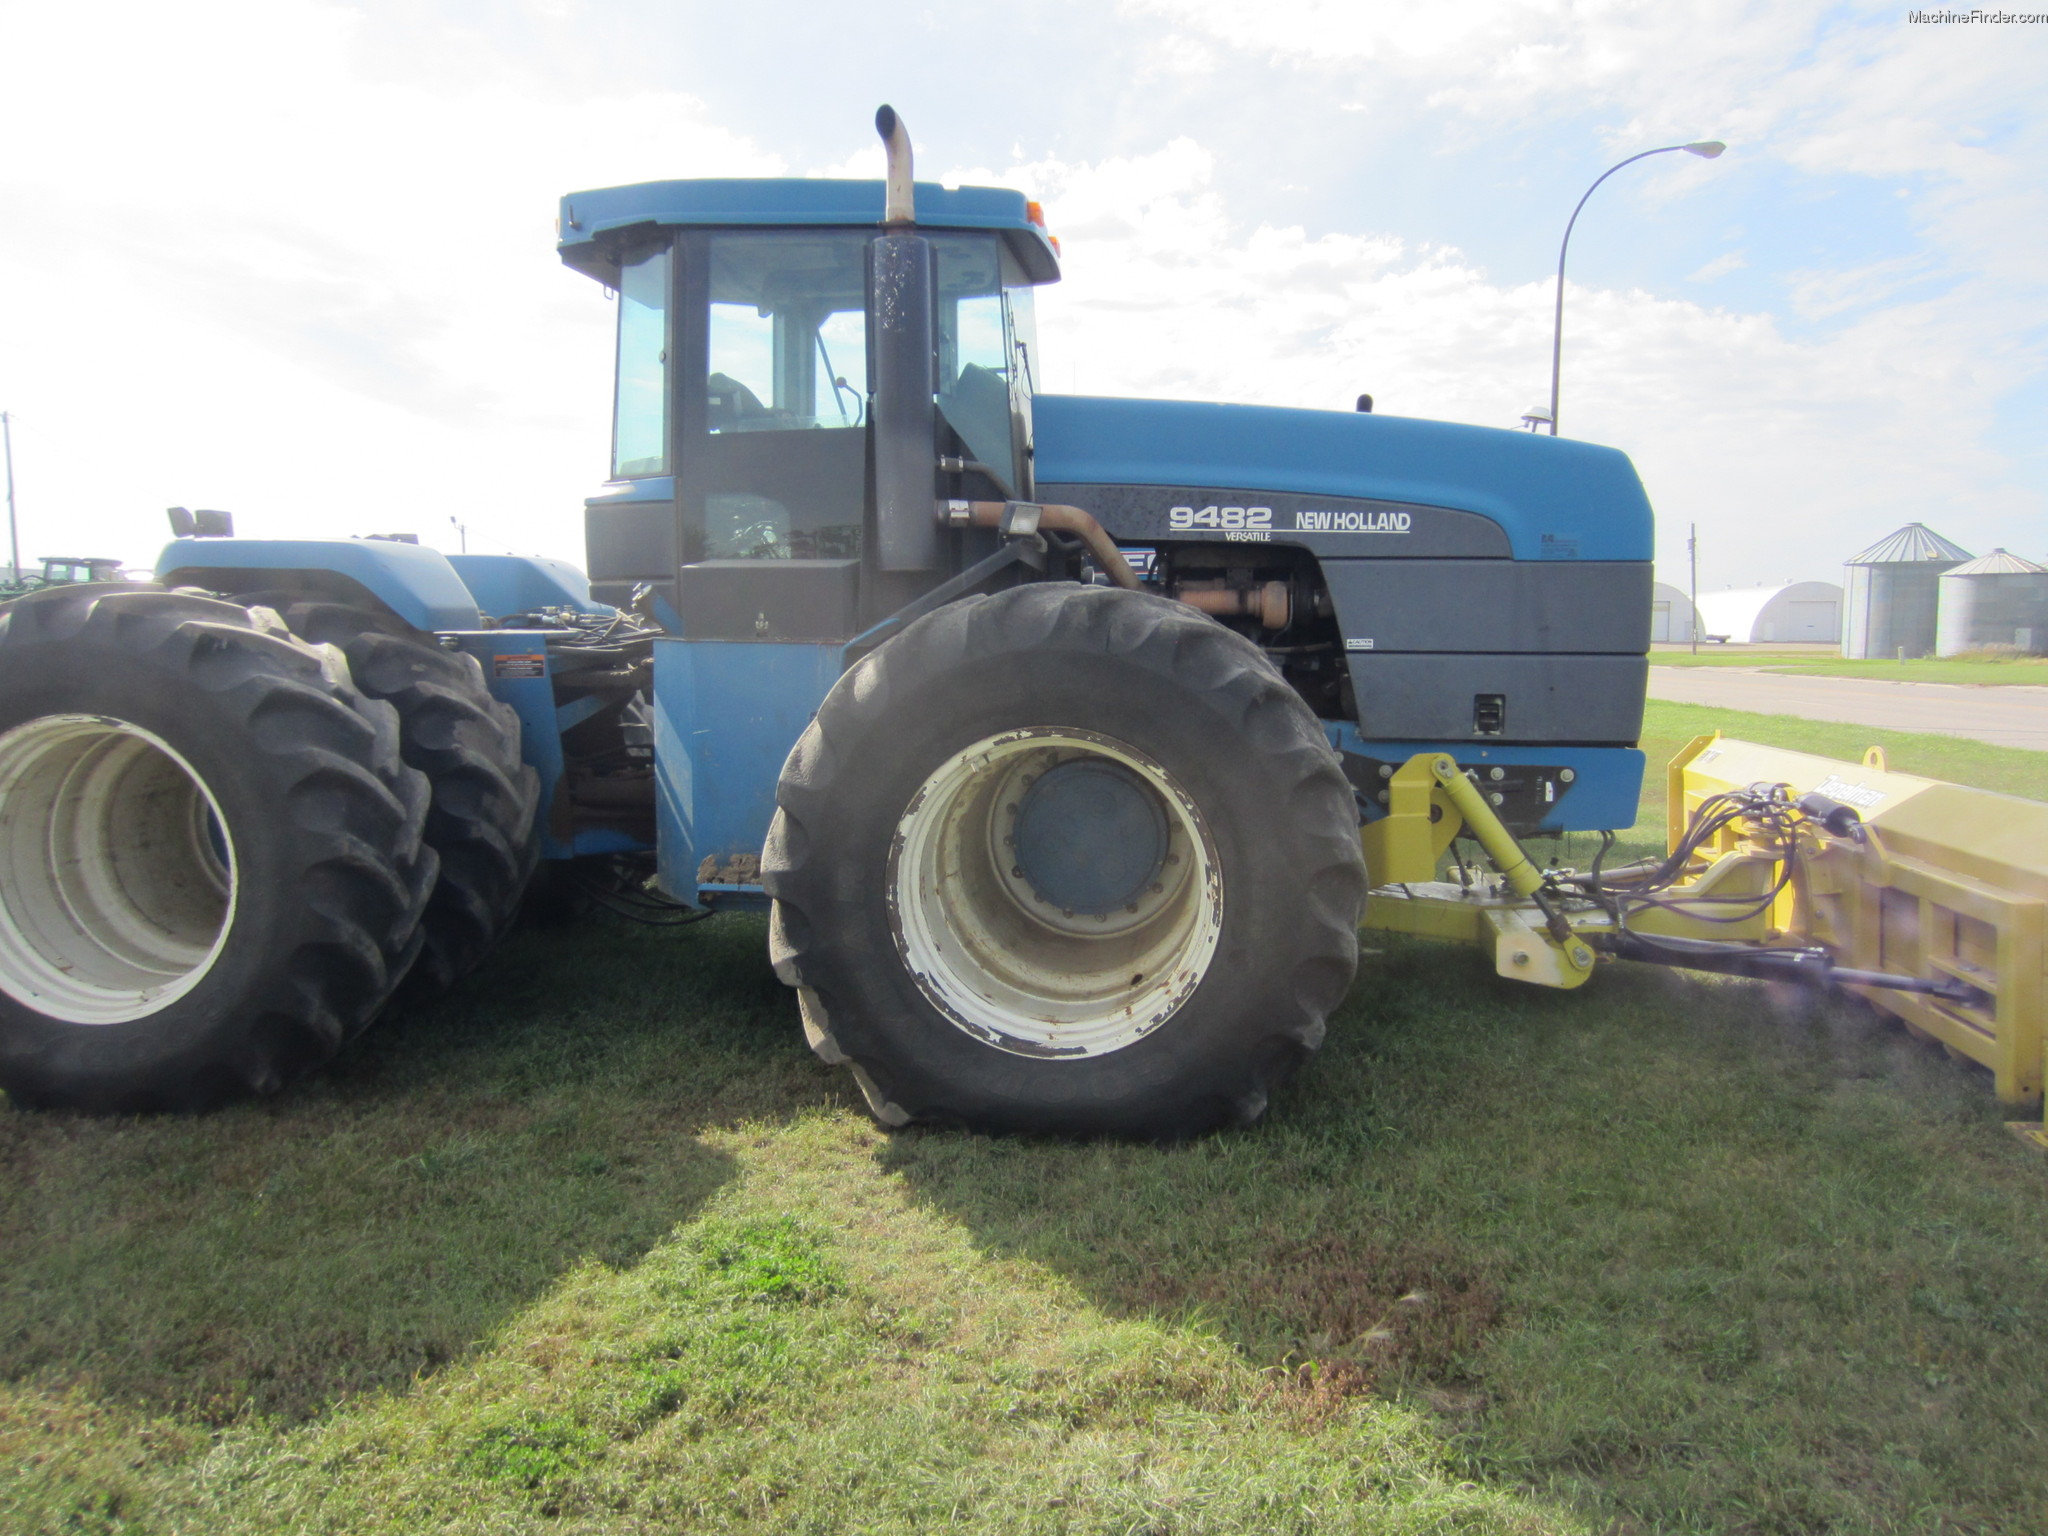 1996 New Holland Tractor : New holland tractors articulated wd john